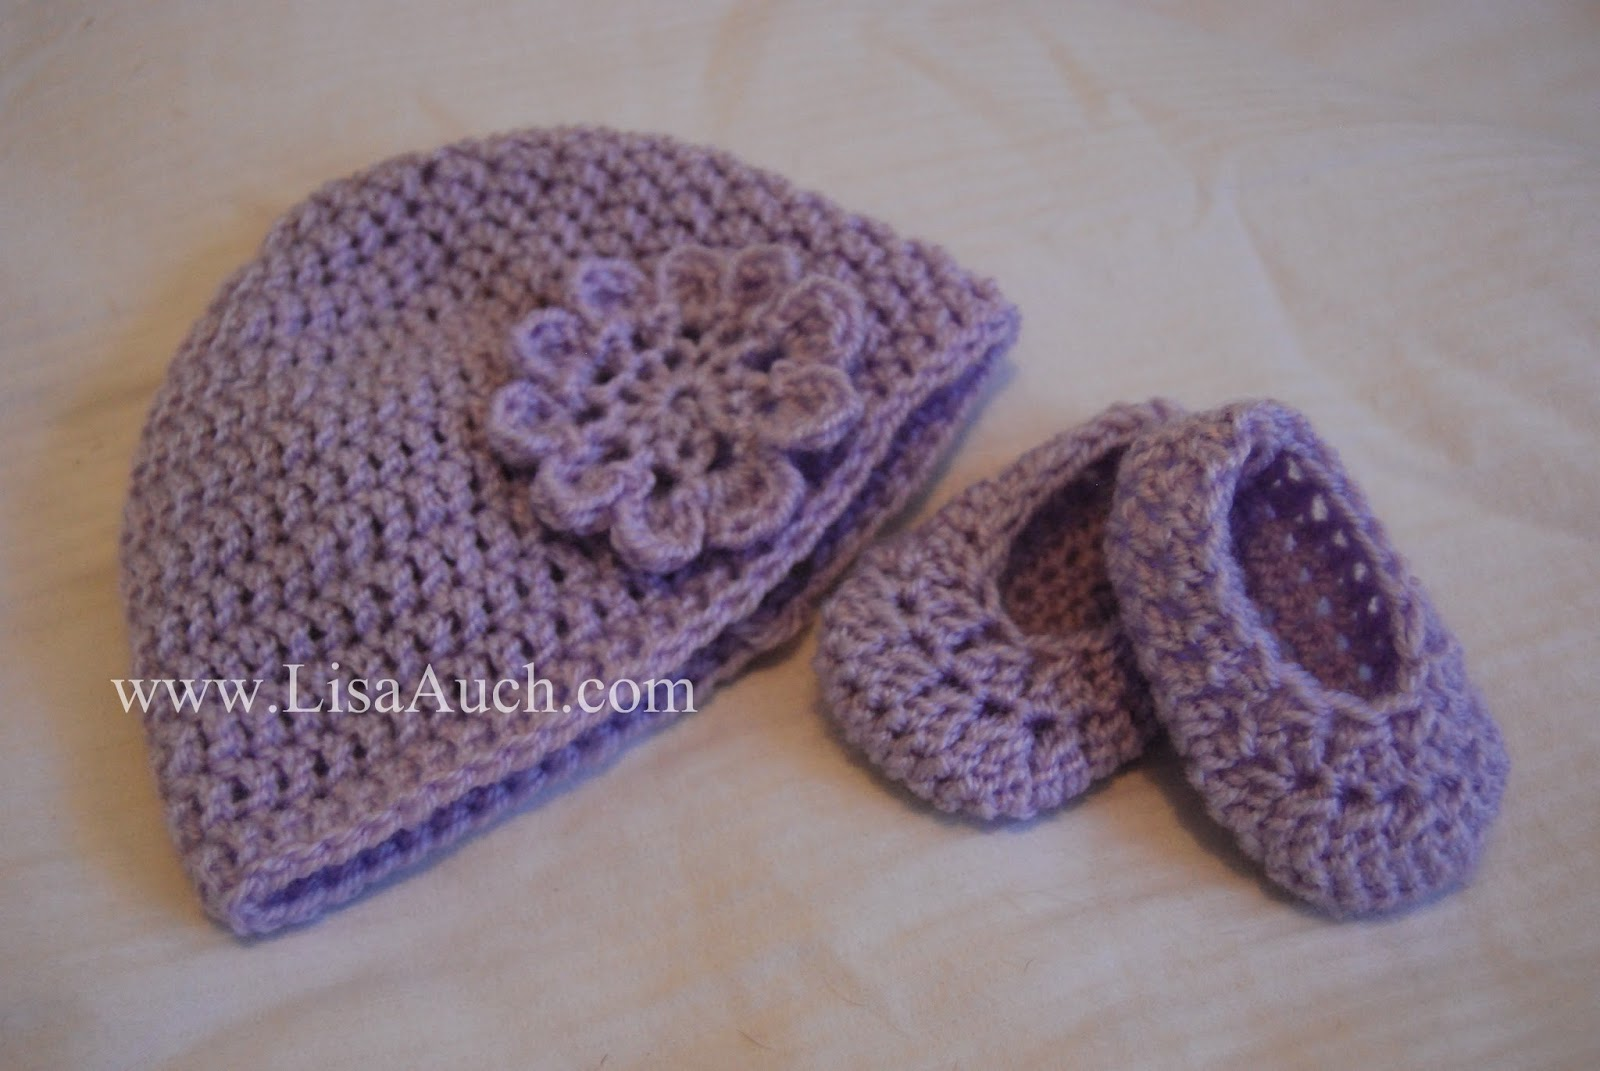 a5221d432 Free Crochet Patterns and Designs by LisaAuch  Free Crochet Pattern ...